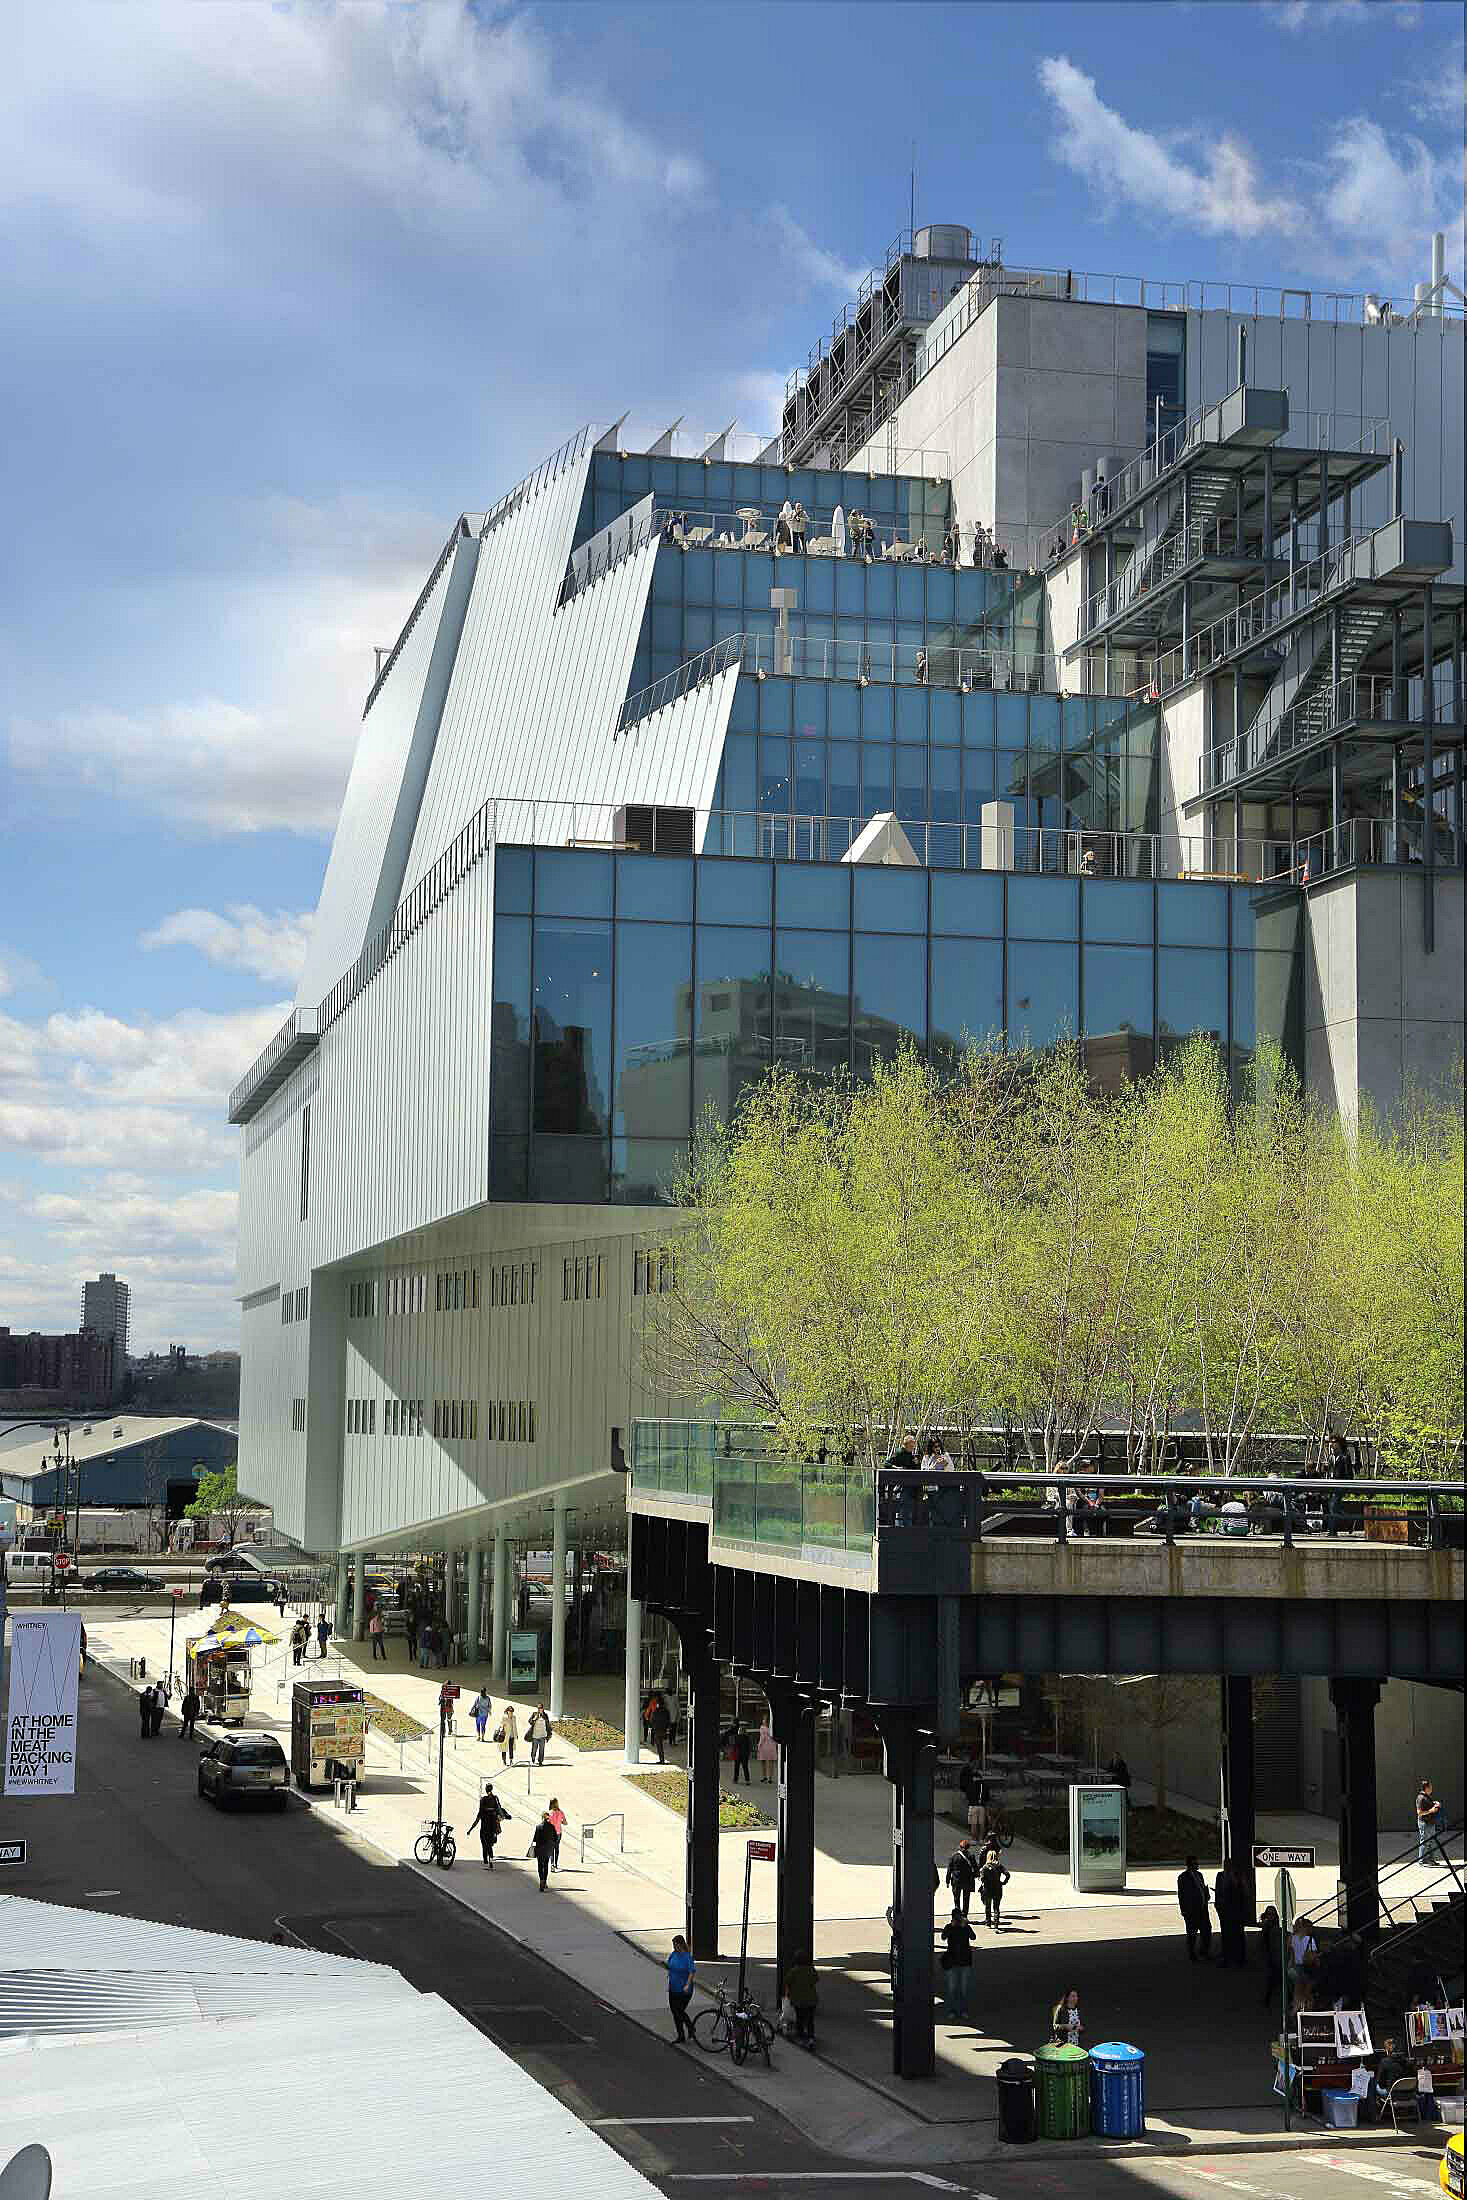 The exterior of the Whitney Museum of America Art as seen from Gansevoort street